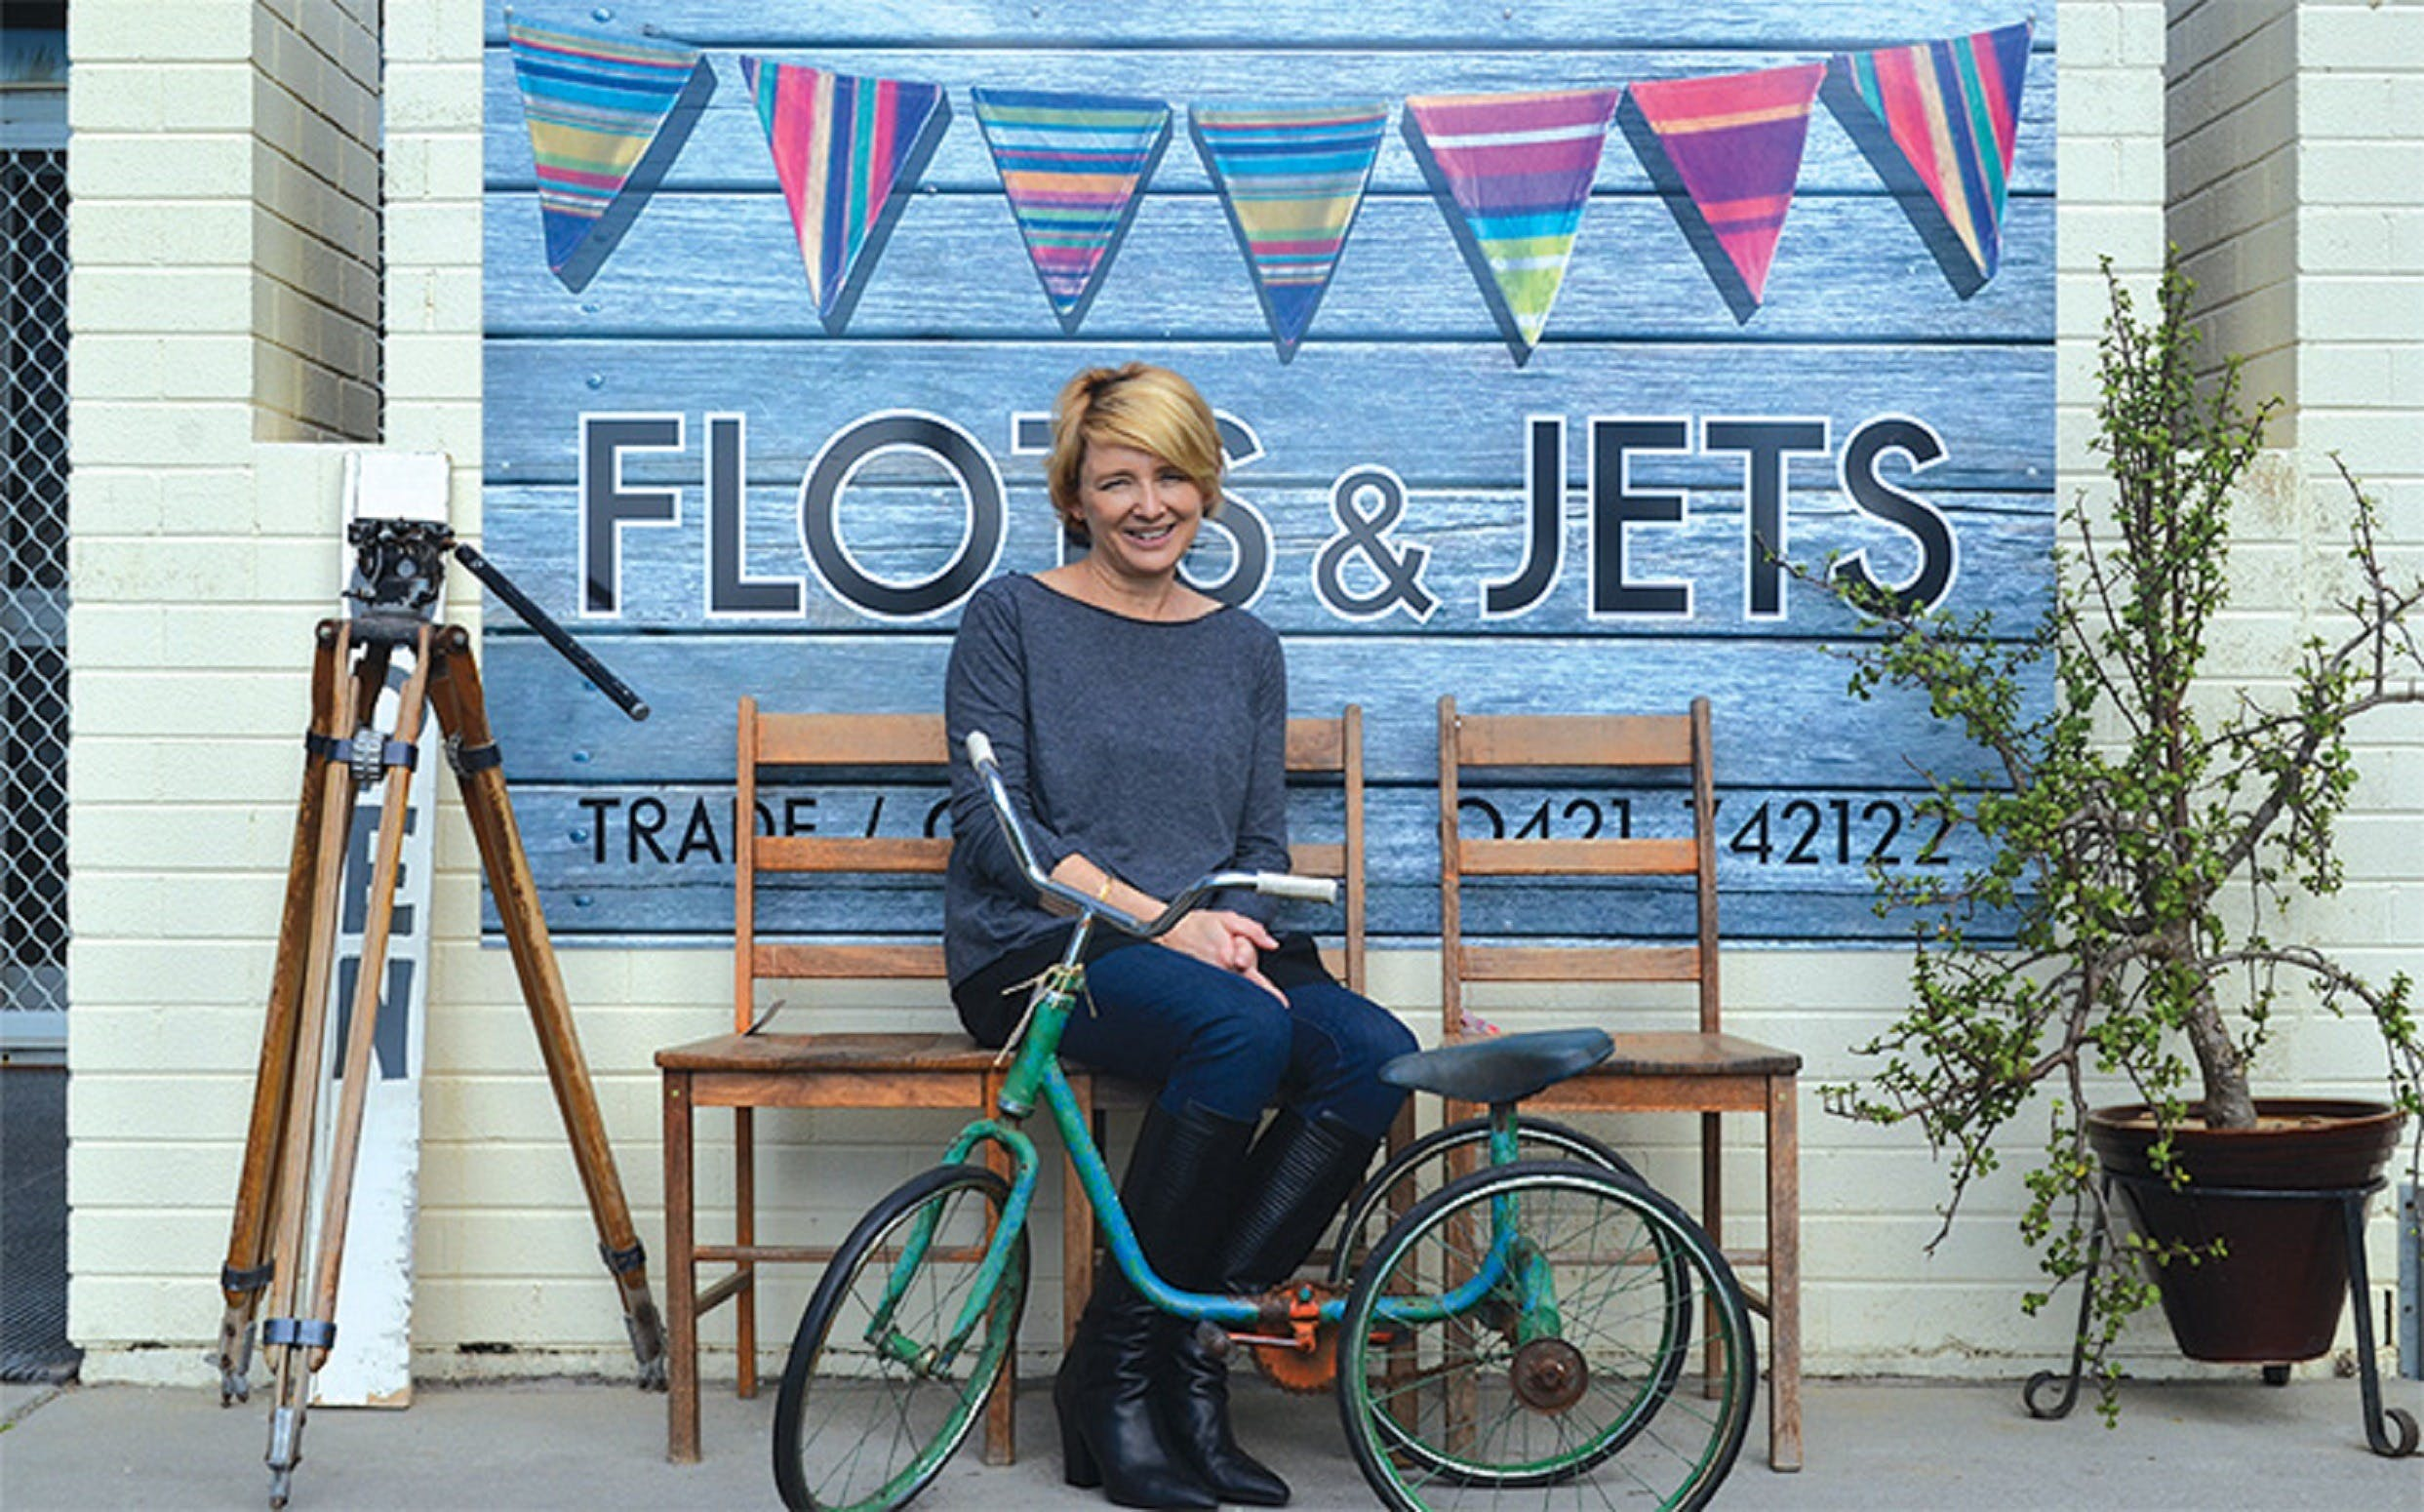 Flots and Jets - Accommodation Kalgoorlie